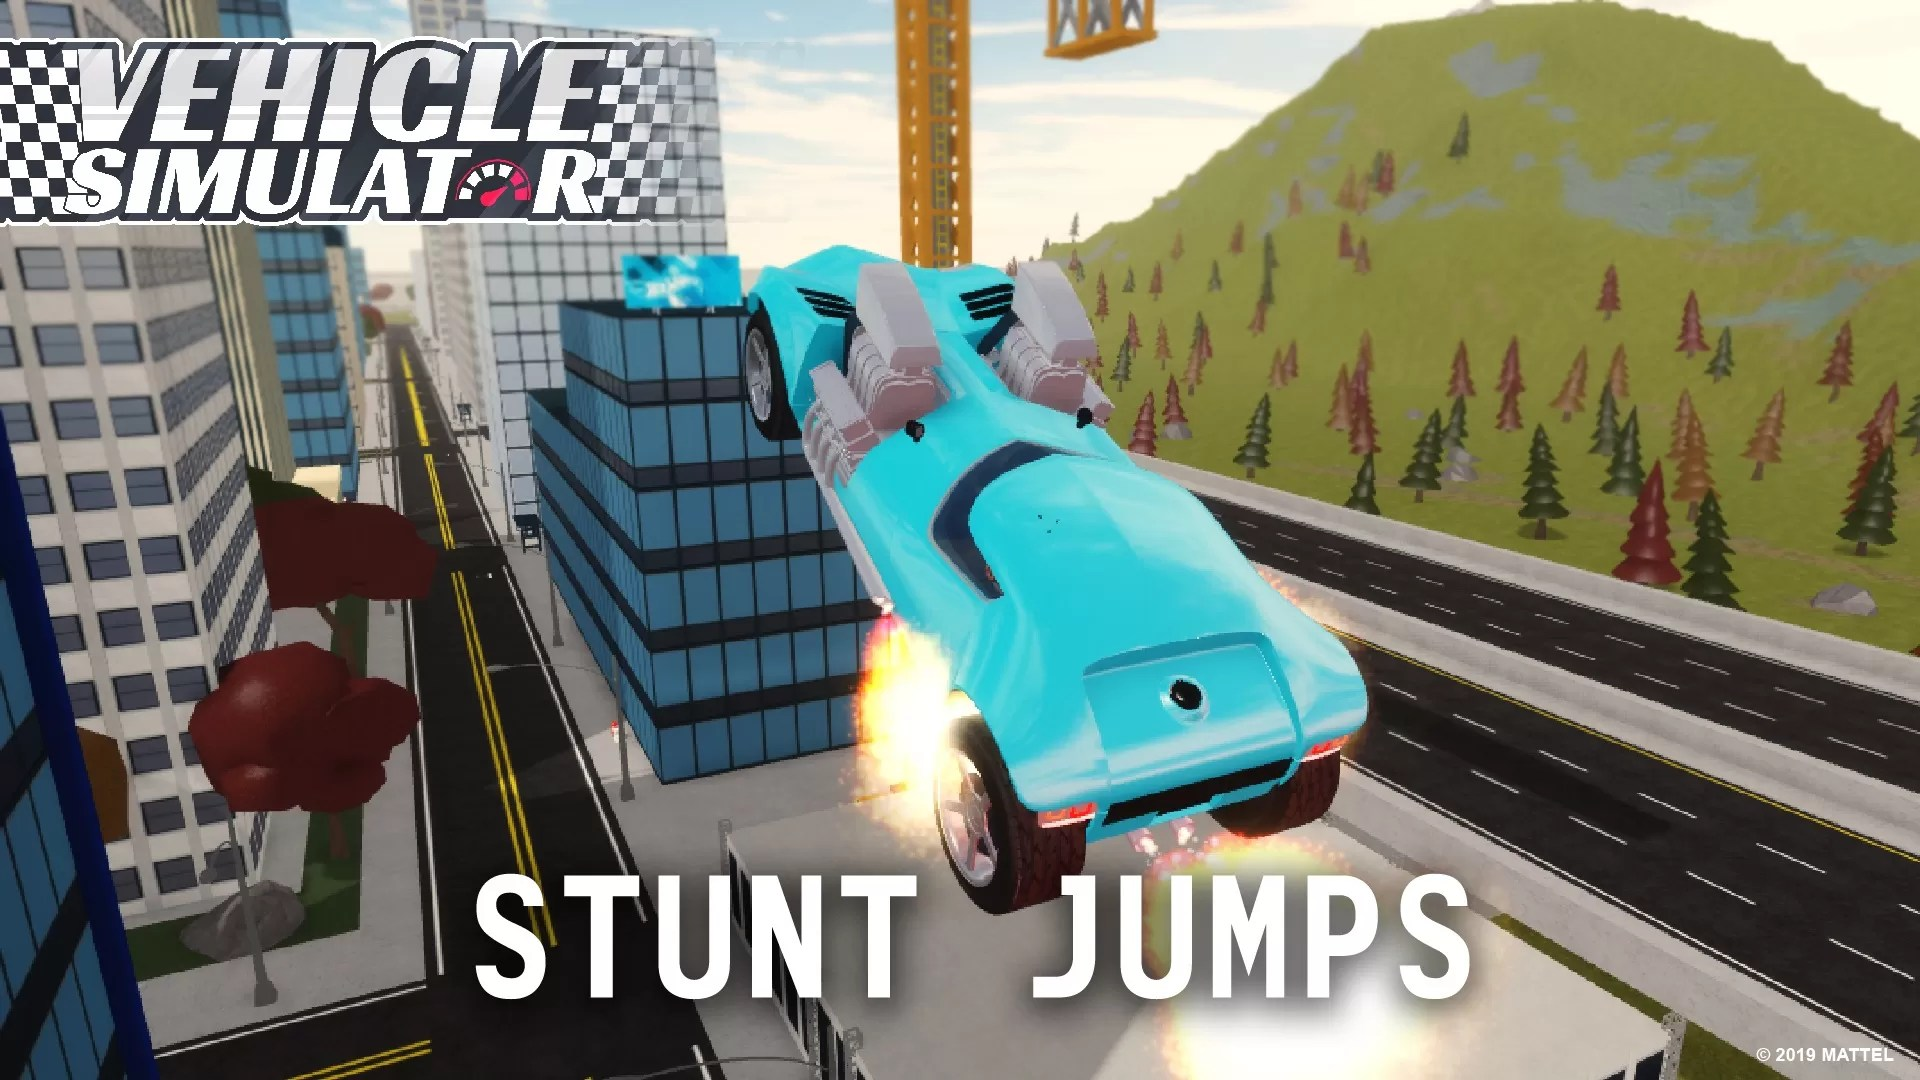 Roblox Vehicle Simulator Code Working 2018 Most Viewed Mattel Is Bringing Hot Wheels Updates To Four Games Including Roblox